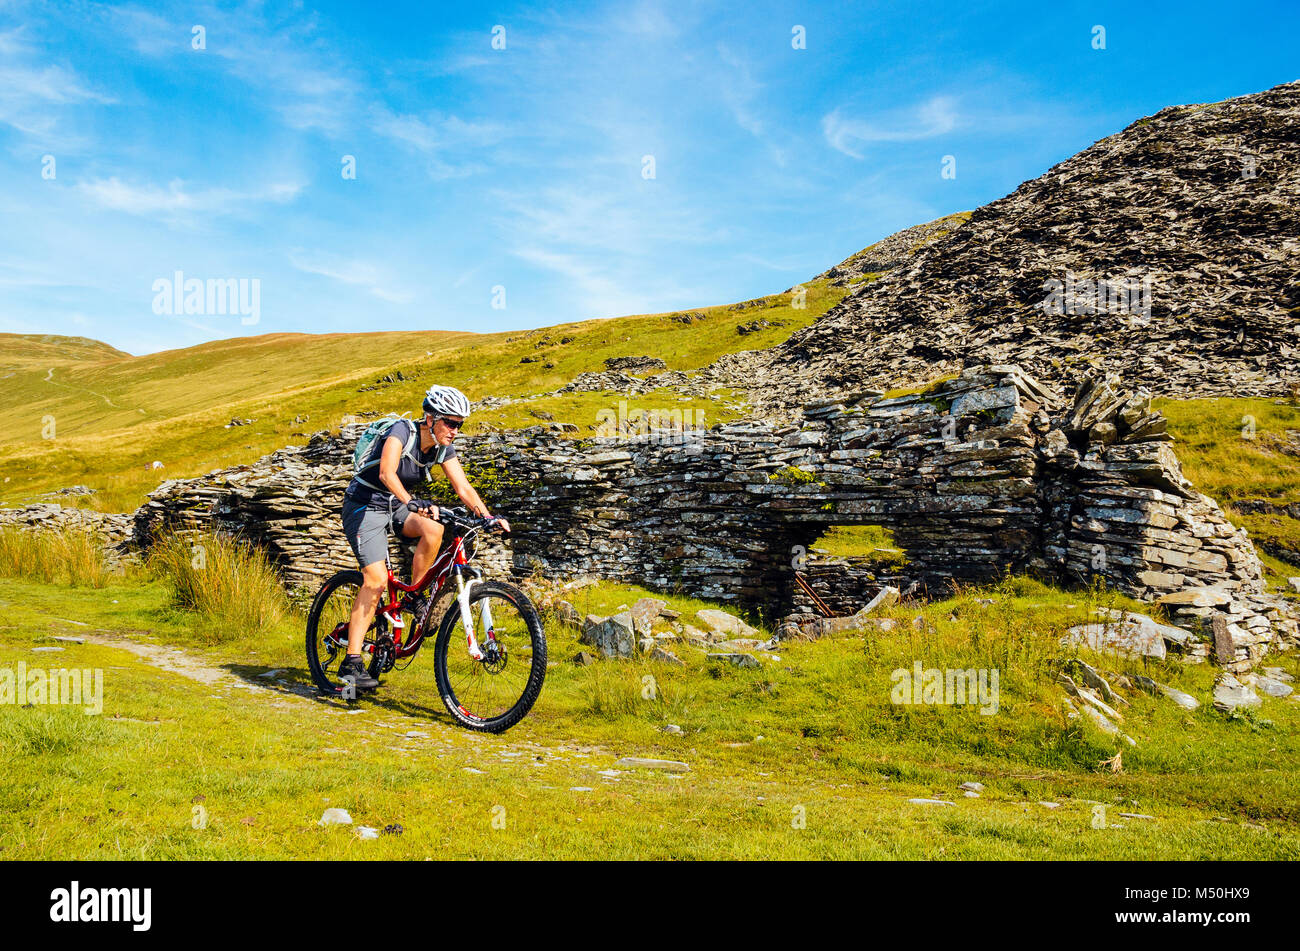 Femmina mountain biker passando le rovine di cava a Walna Scar cave nel Lake District inglese Immagini Stock